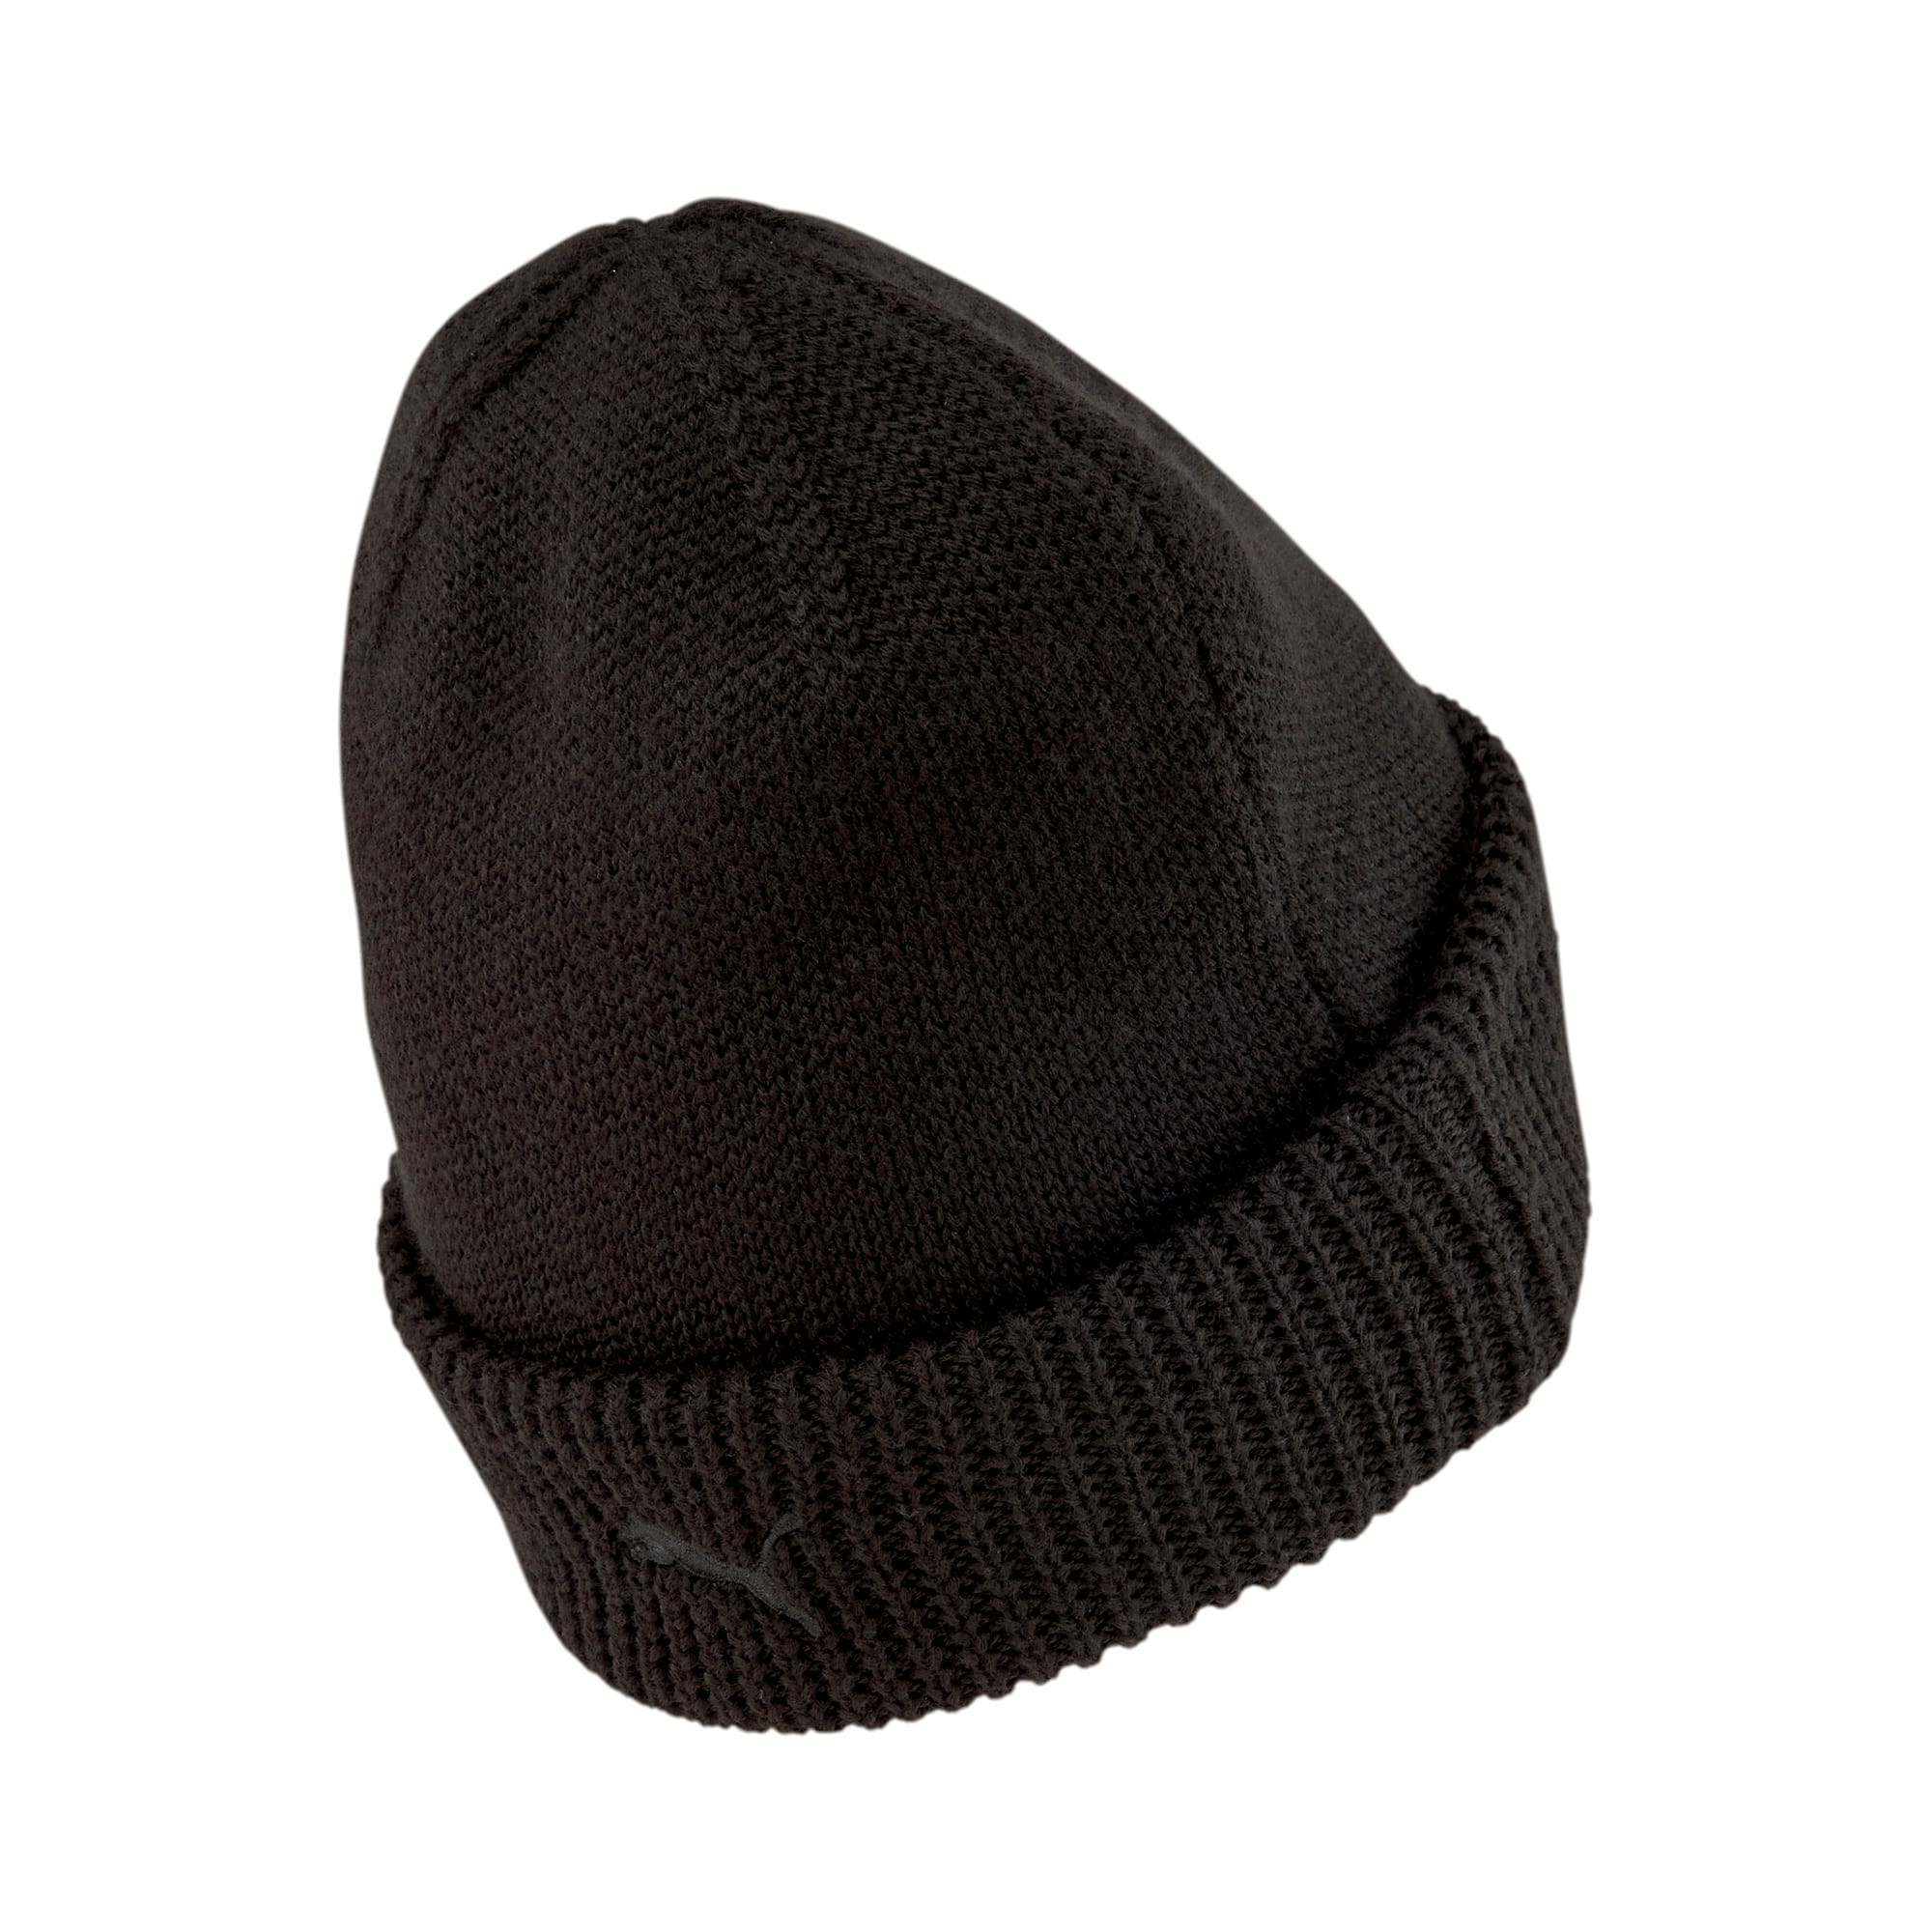 Porsche Design Knit Beanie, Puma Black, large